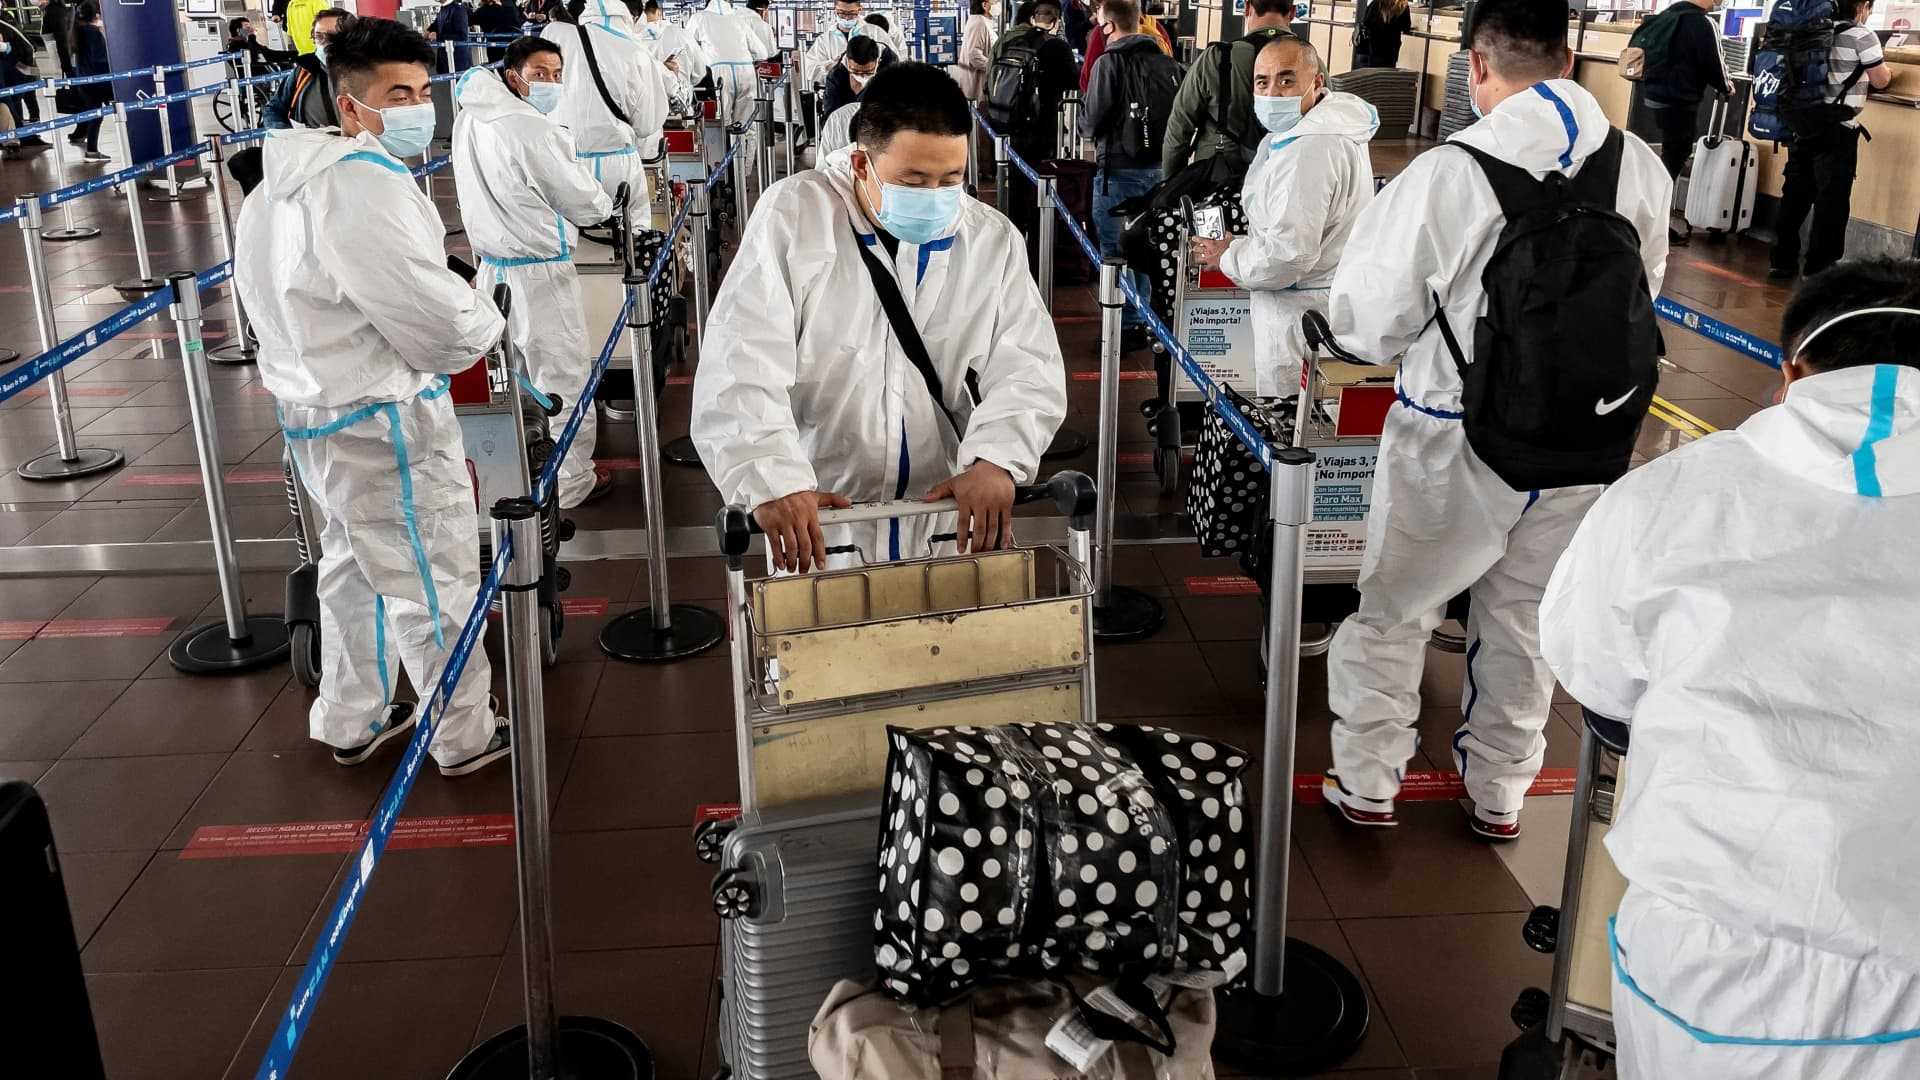 Passengers in protective suits against the spread of the novel coronavirus disease, queue at counters at Arturo Merino Benitez International Airport in Santiago on April 1, 2021, after Chile announced it will close its borders in April as of Monday amid a surge in COVID-19 cases.